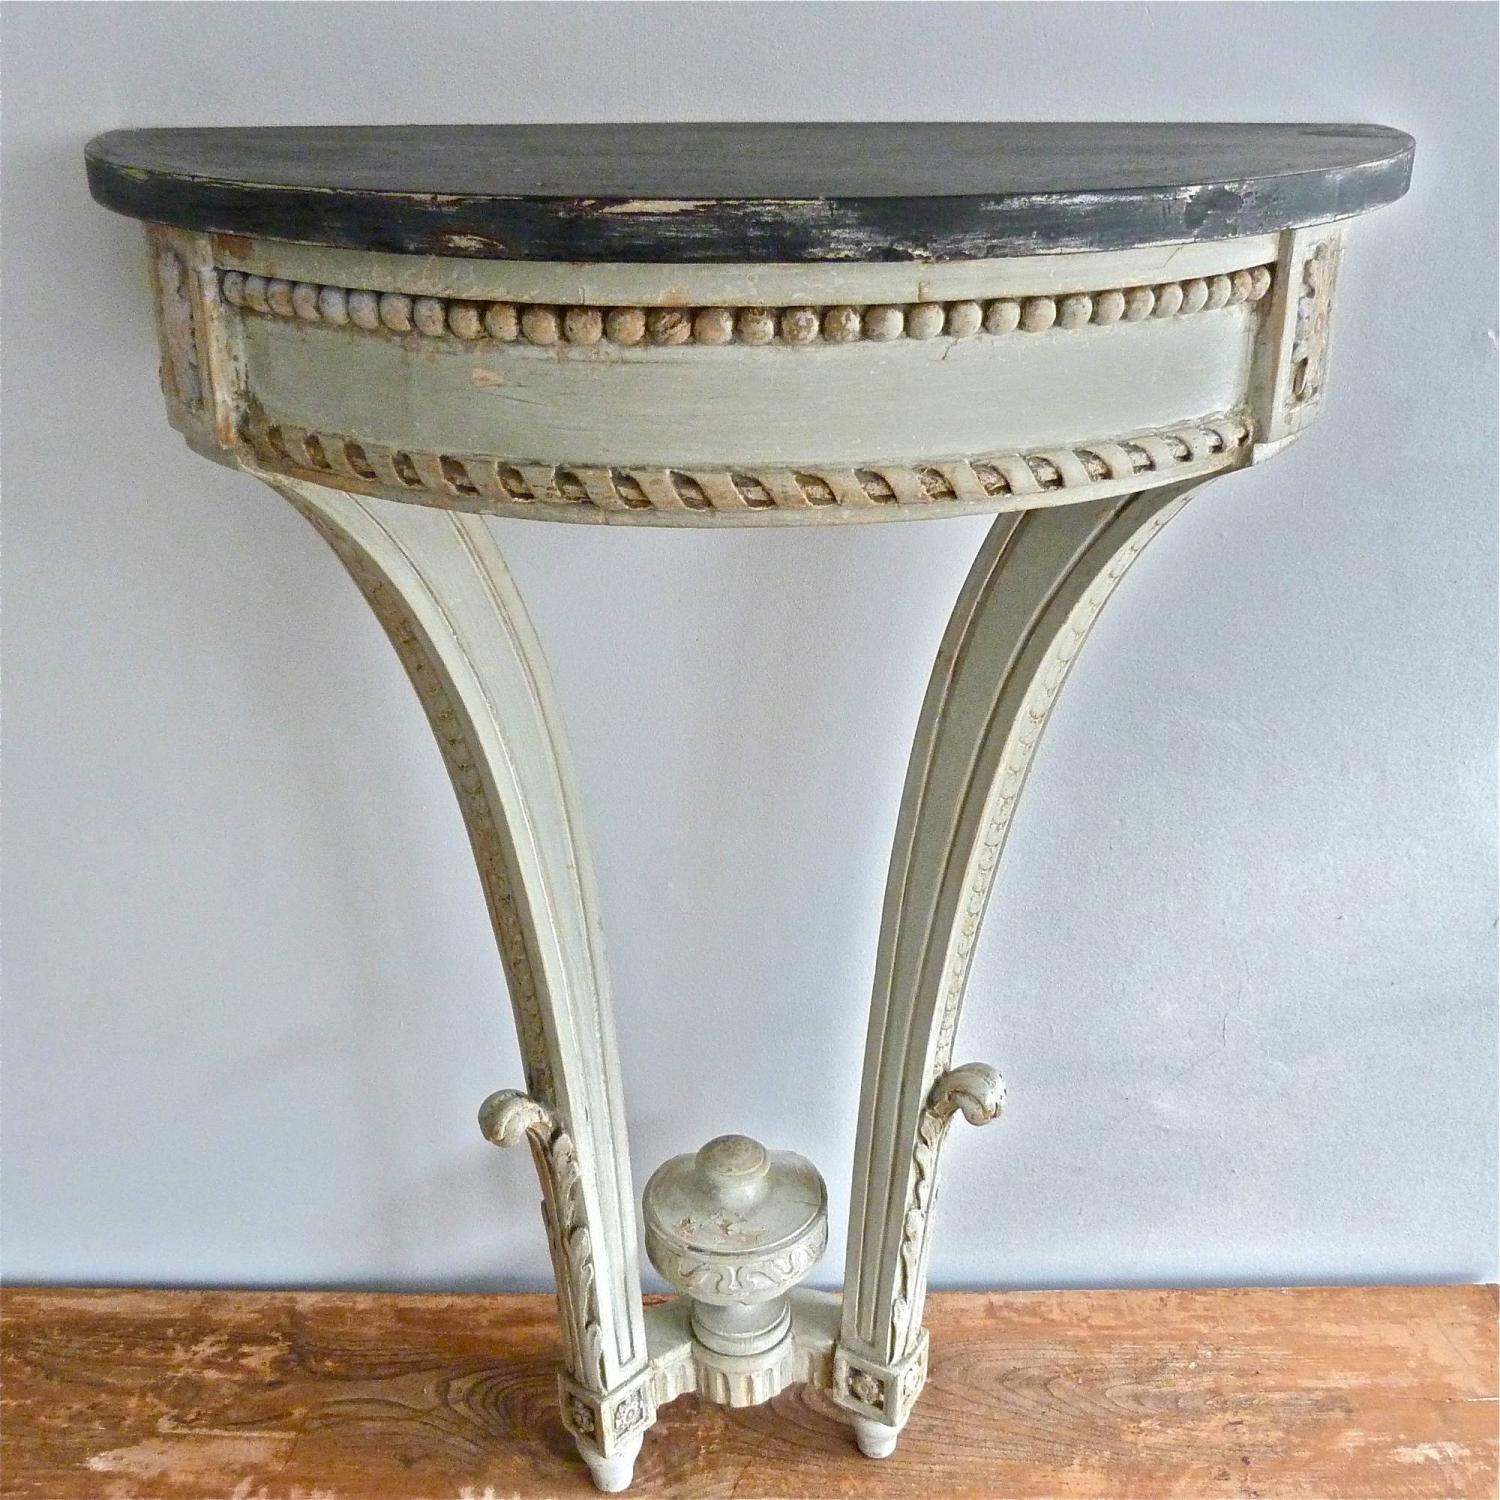 19TH CENTURY LOUIS XVI STYLE CONSOLE TABLE